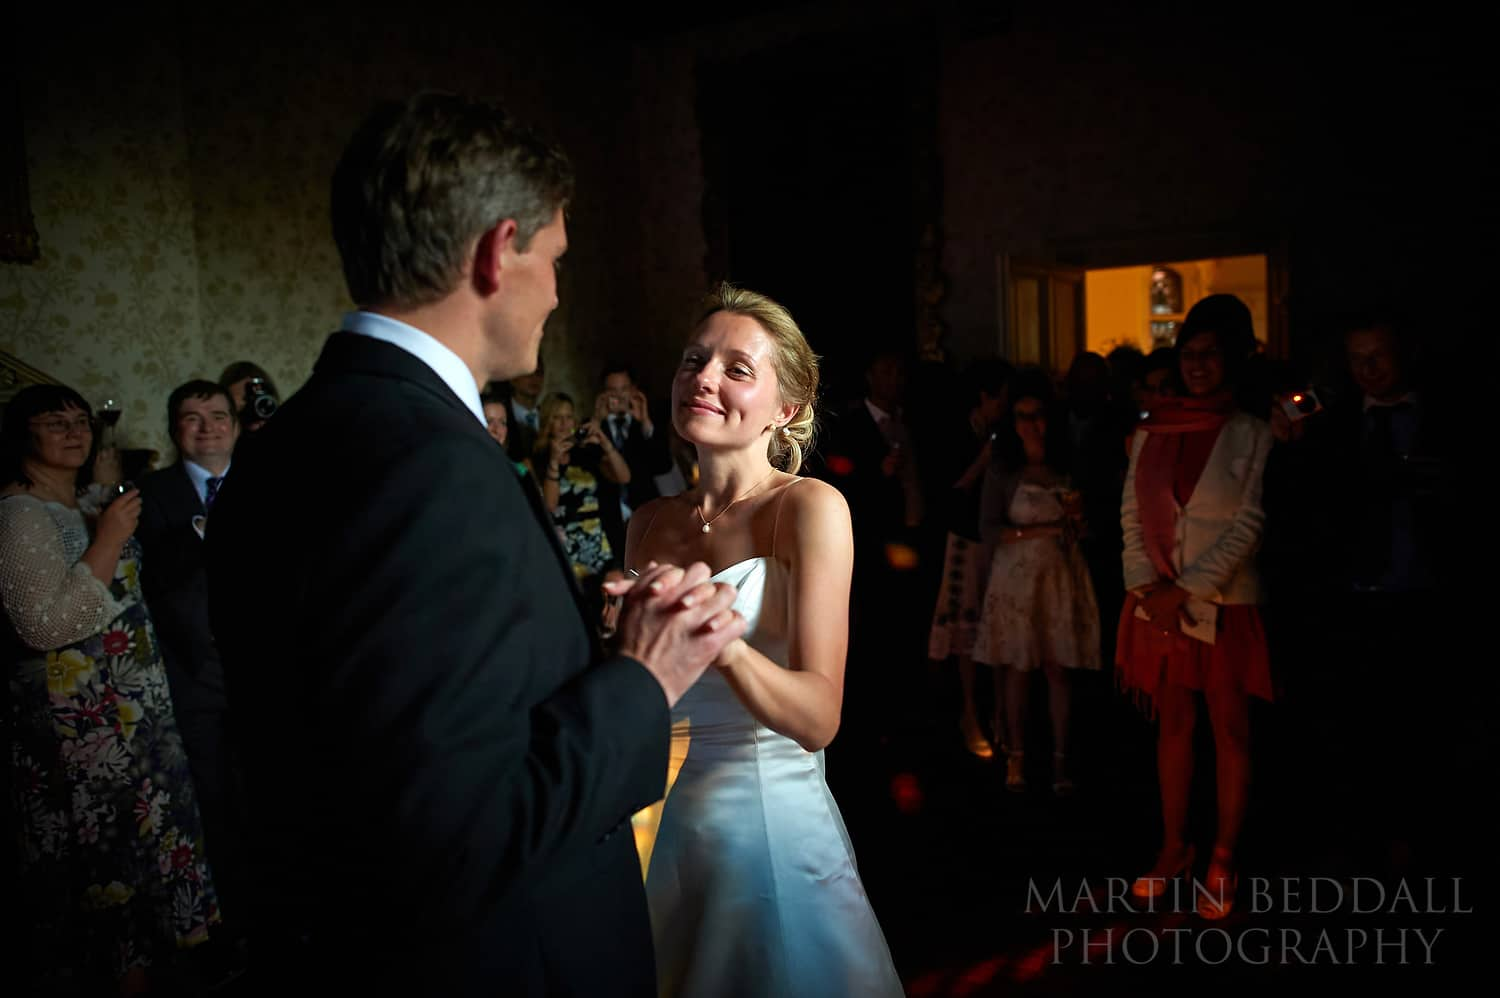 First dance at The Elvetham hotel